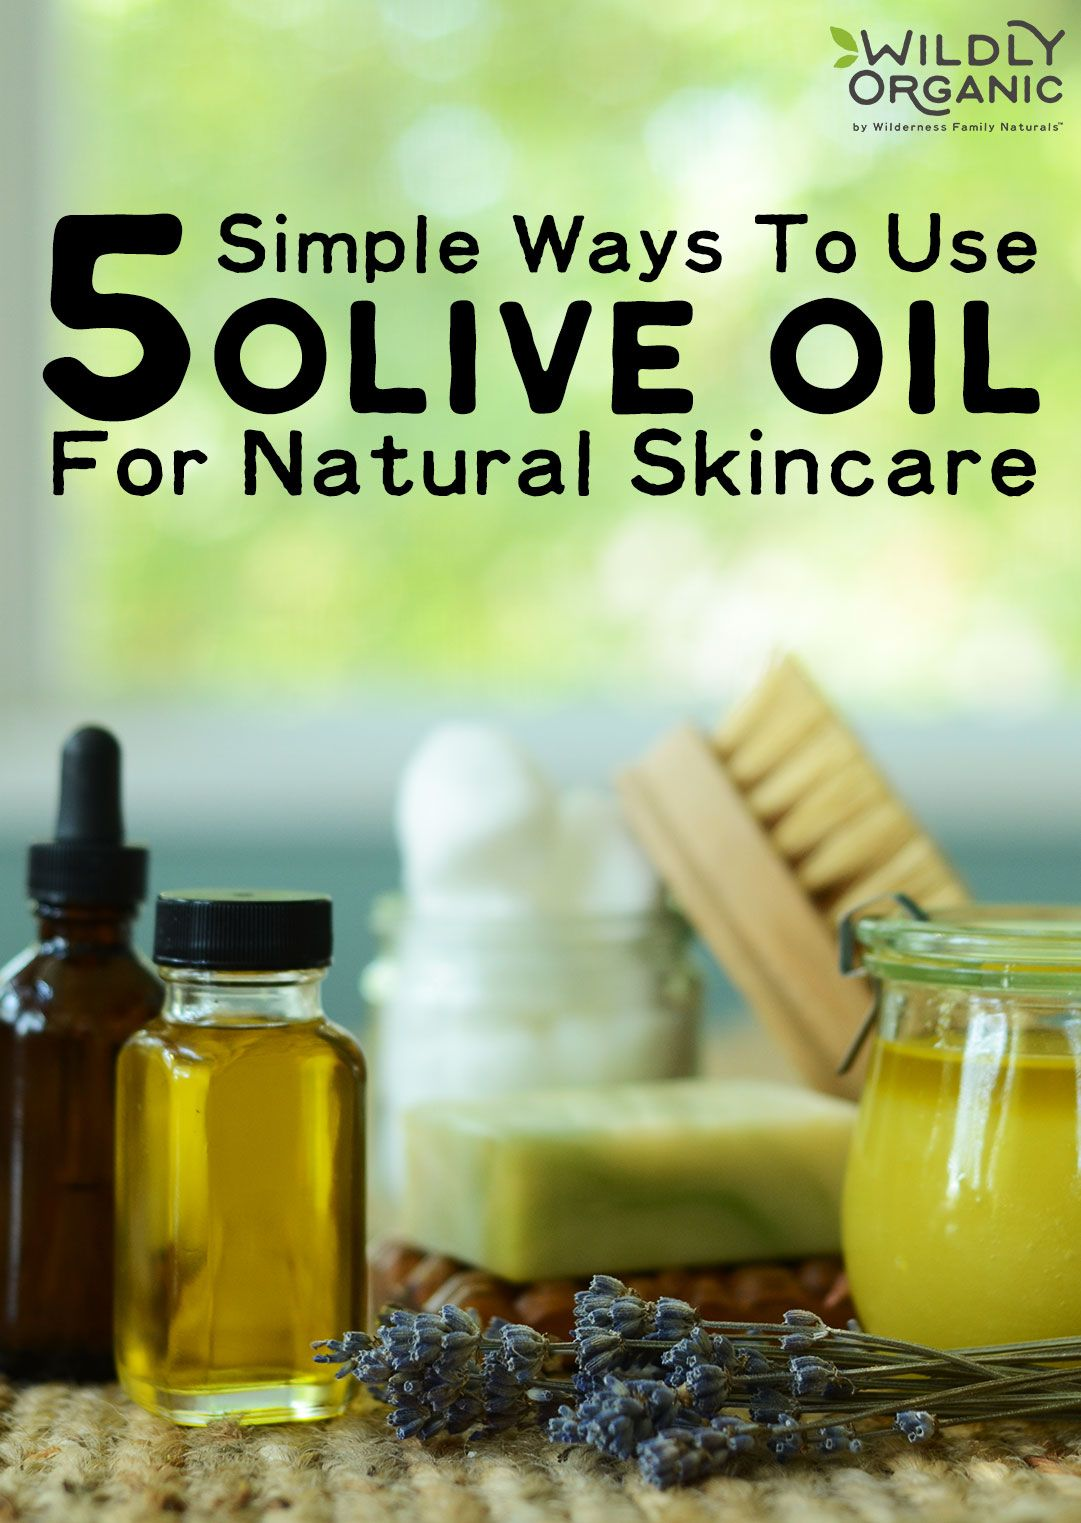 5 Simple Ways To Use Olive Oil For Natural Skincare